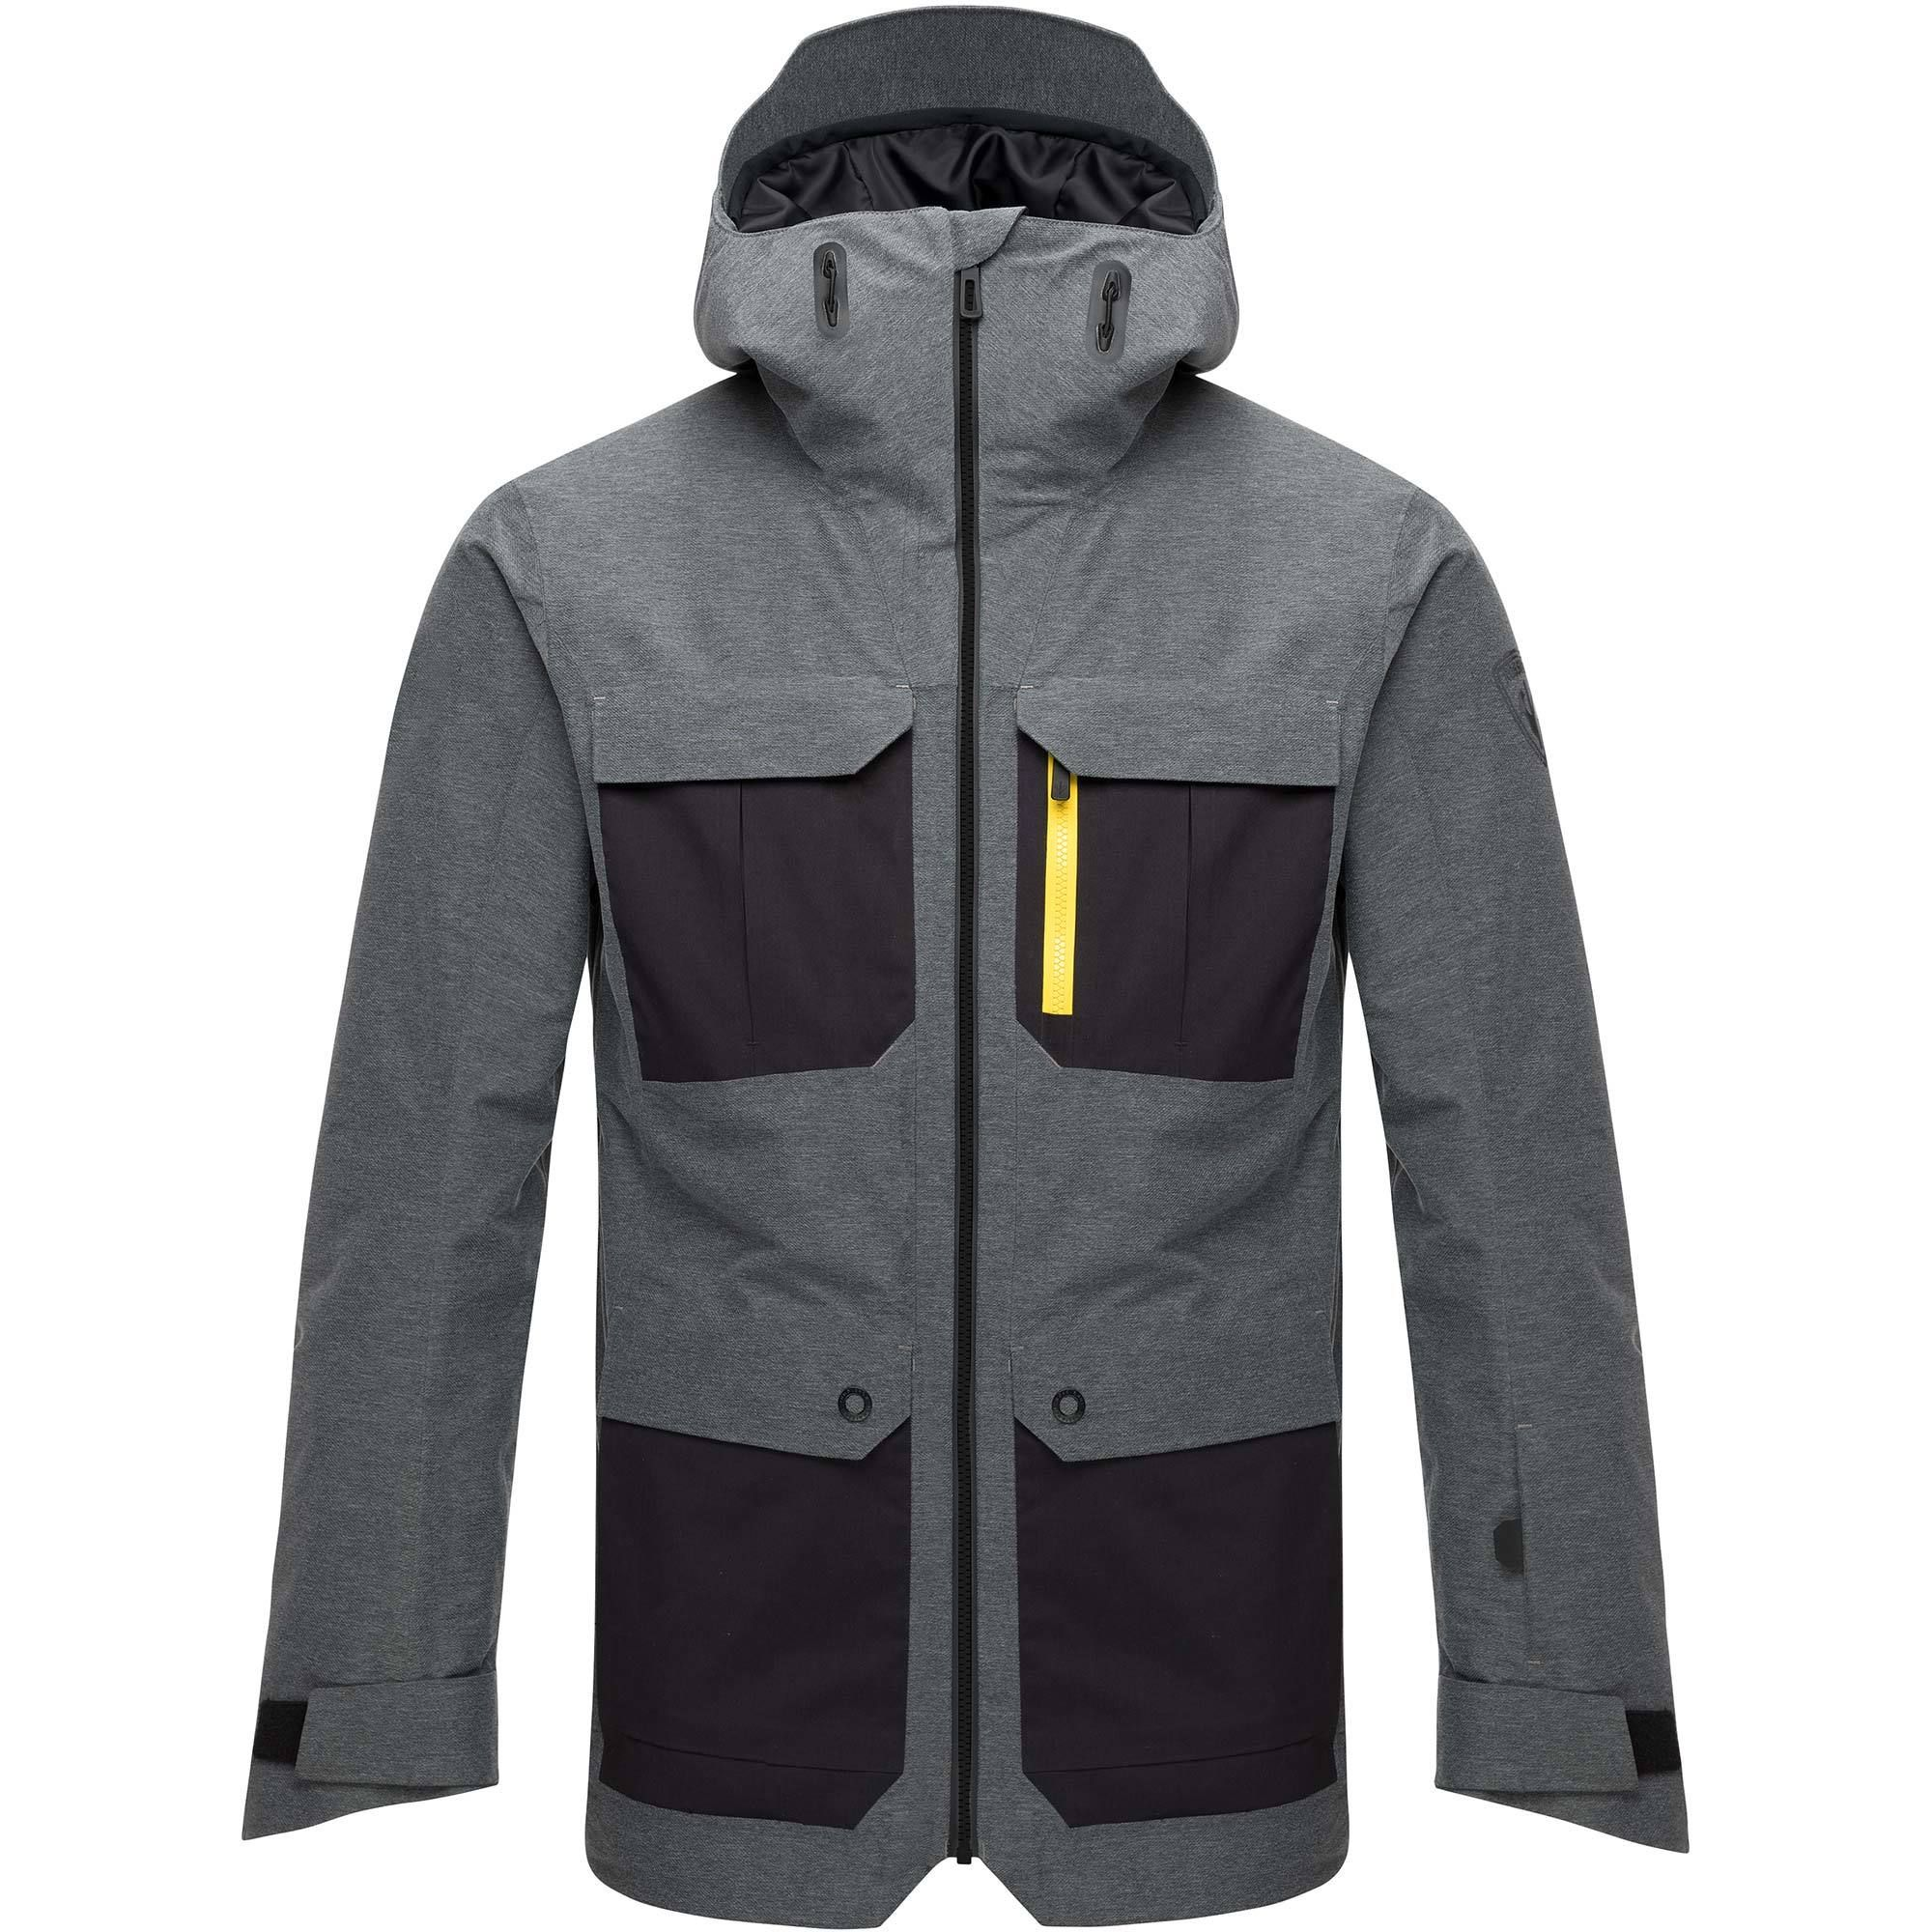 Veste rossignol heather grey